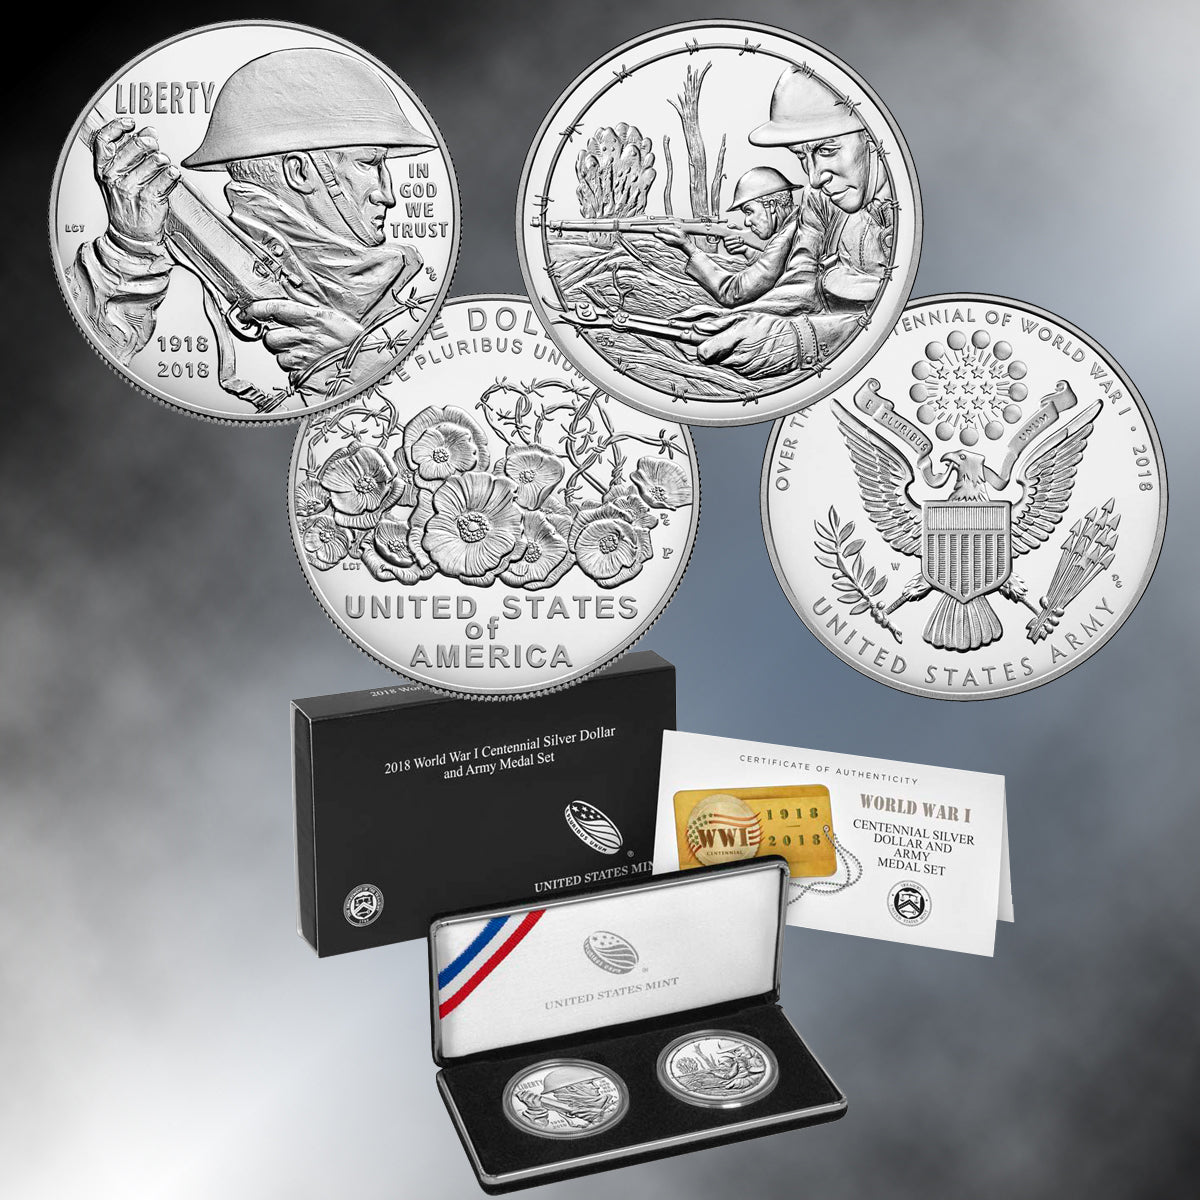 2018 WWI Centennial Silver Dollar and Medal Set - ARMY